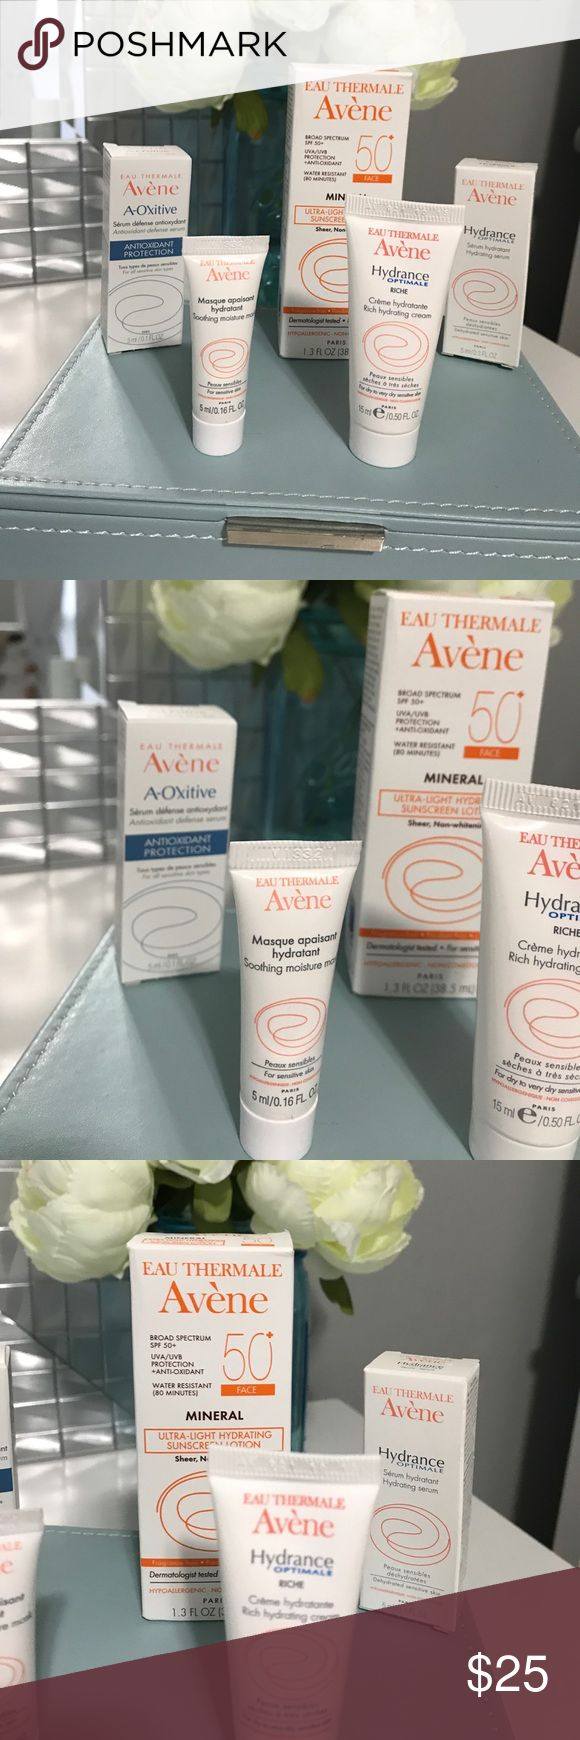 Eau Thermale Avene facial products New sample size/deluxe sample size products!  Antioxidant defense serum Soothing moisture mask Rich hydrating cream Ultra light hydrating sunscreen lotion  Hydrating serum Body oil eau thermale avene Makeup